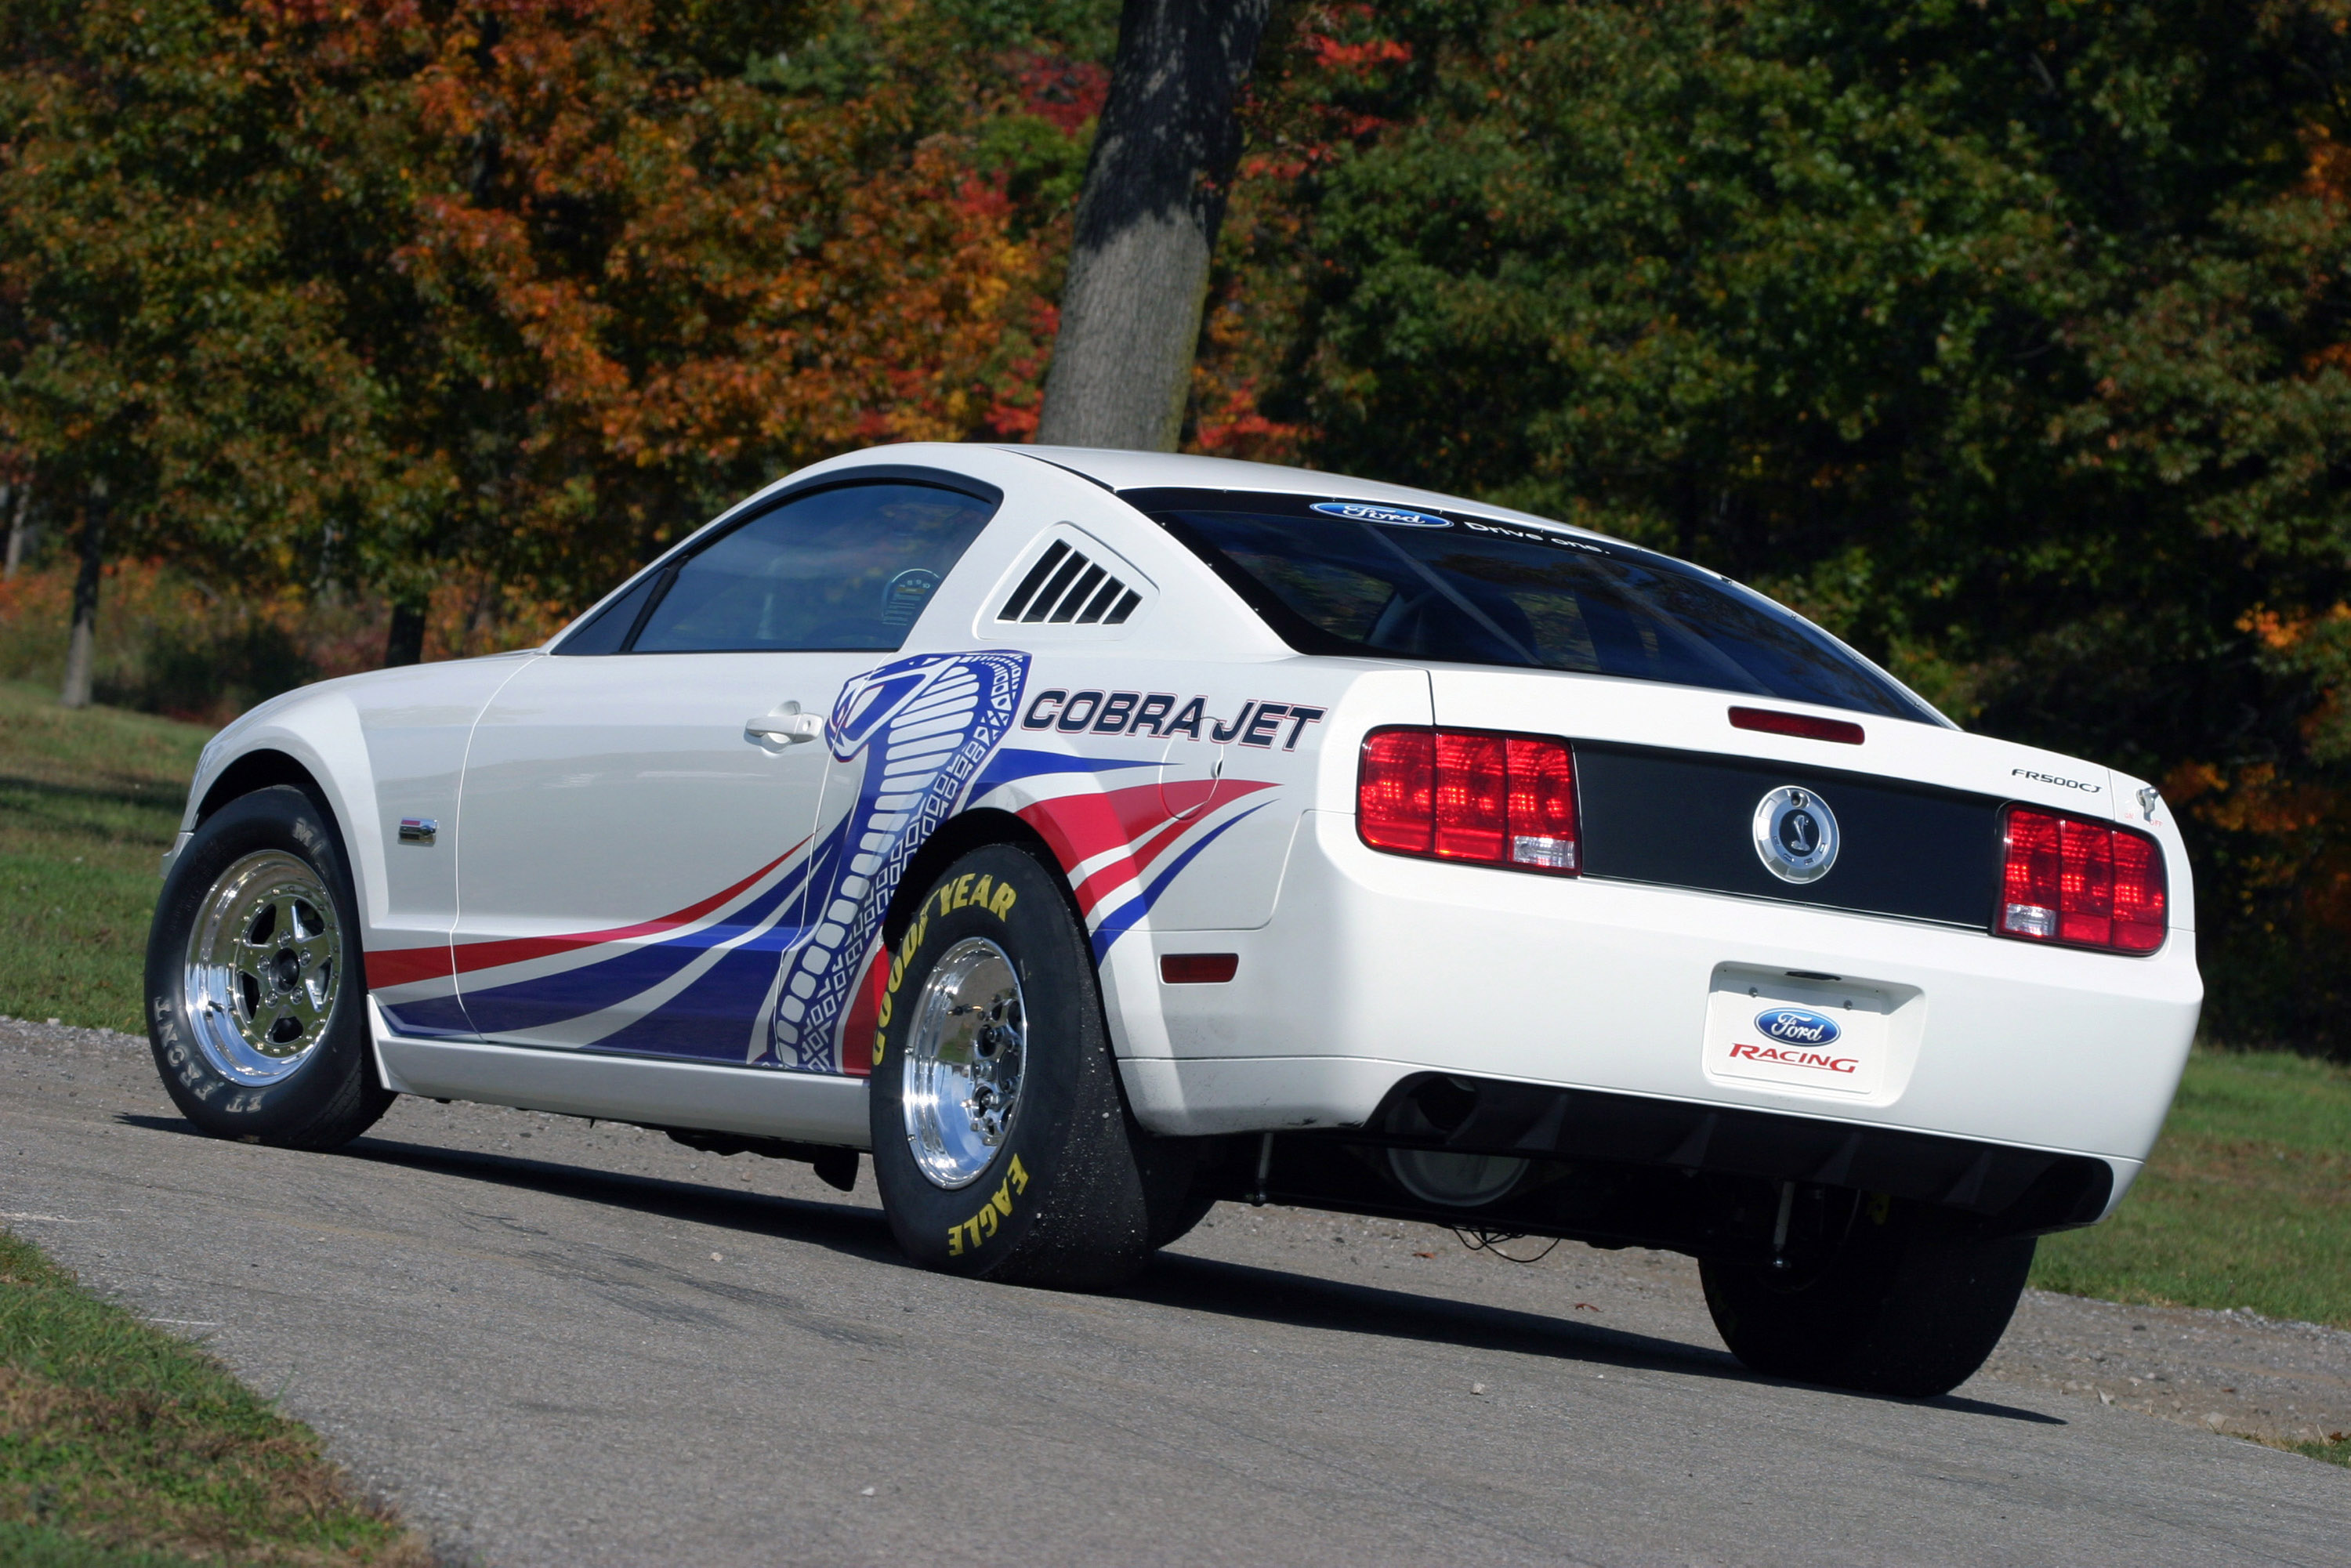 Cobra jet returns to drag racing latest mustang in fr500 for Jet cars review